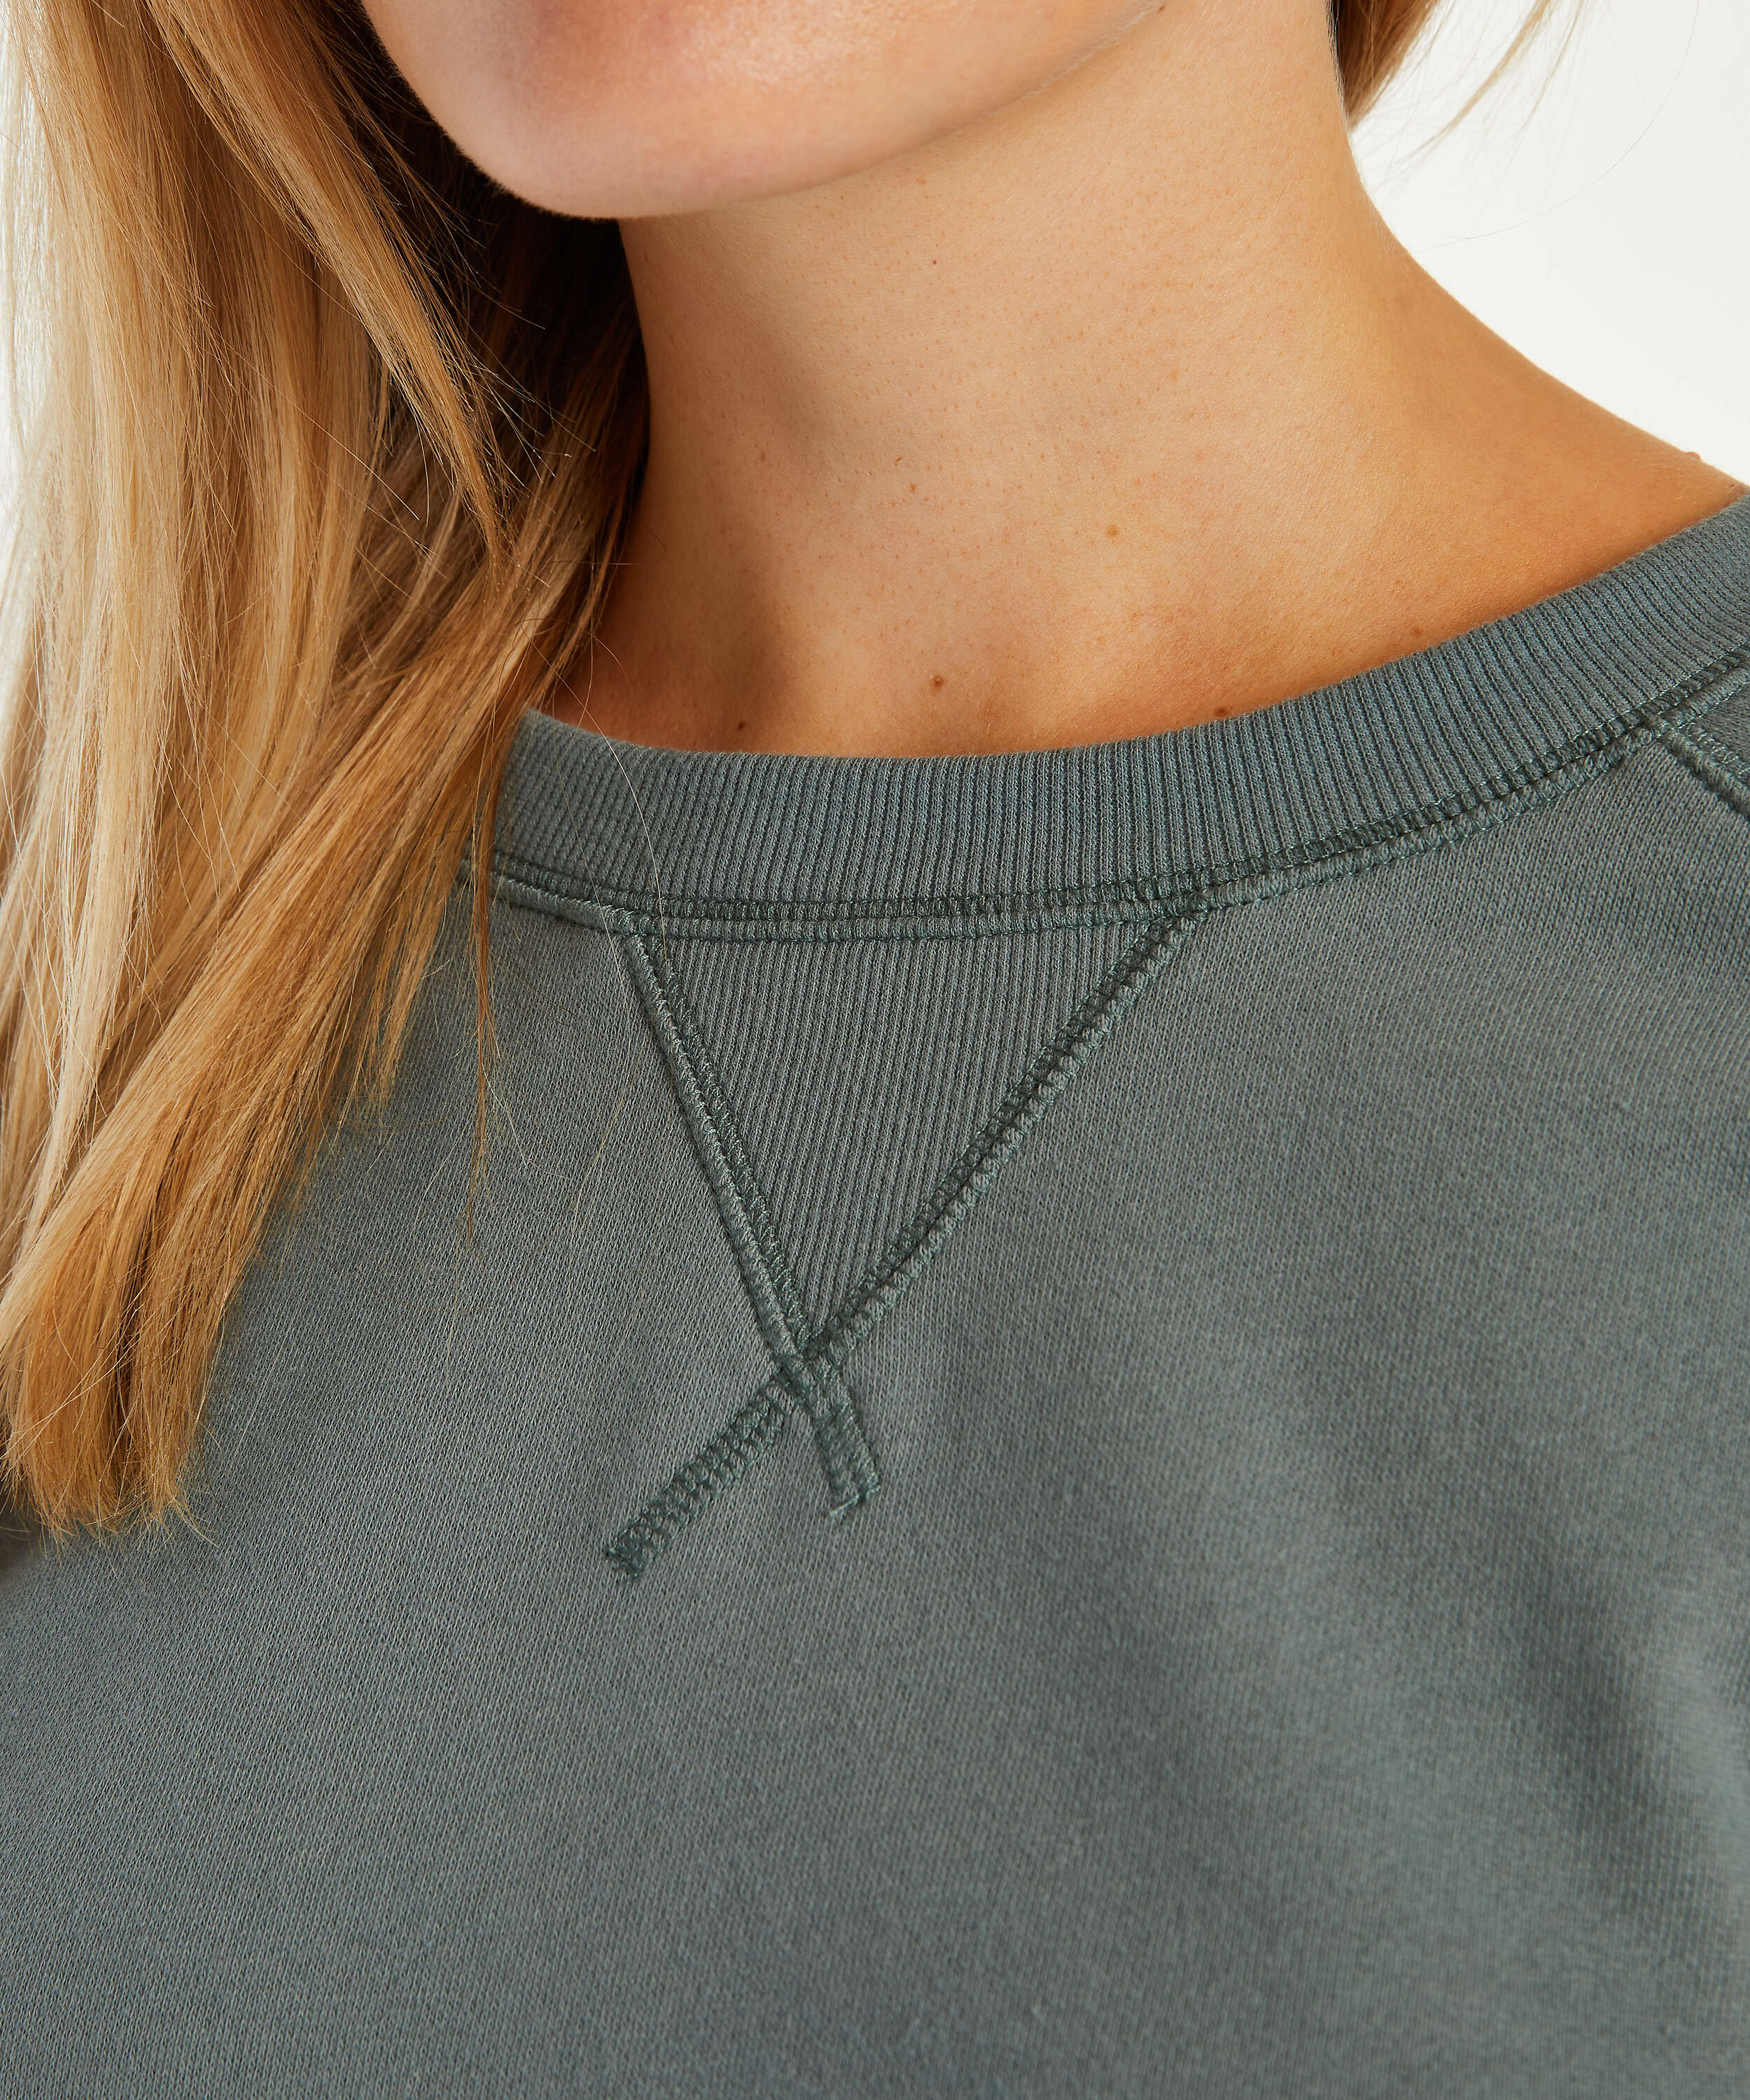 Sweat French Long-Sleeved Top, grön, main